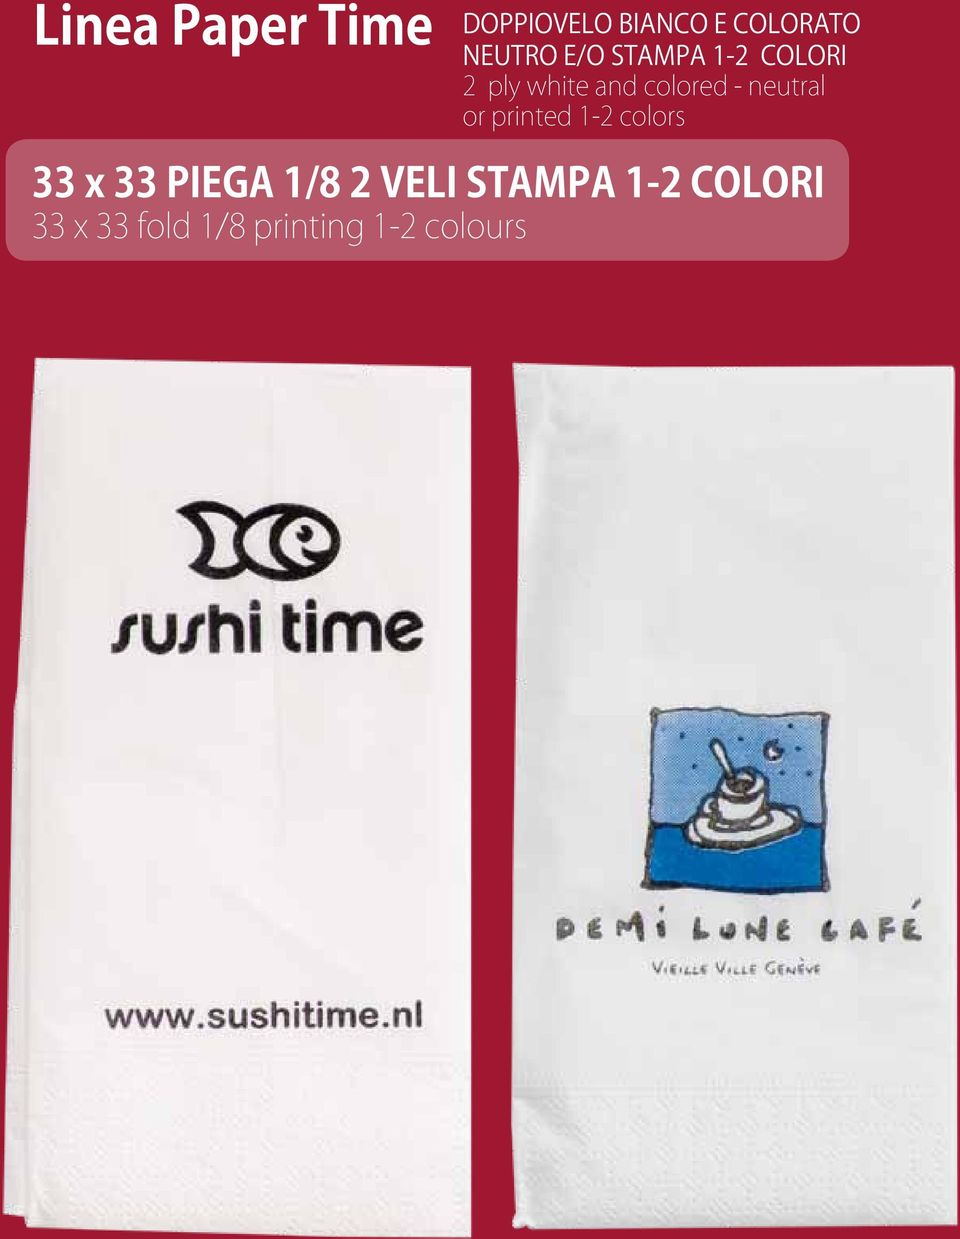 neutral or printed 1-2 colors 33 x 33 PIEGA 1/8 2